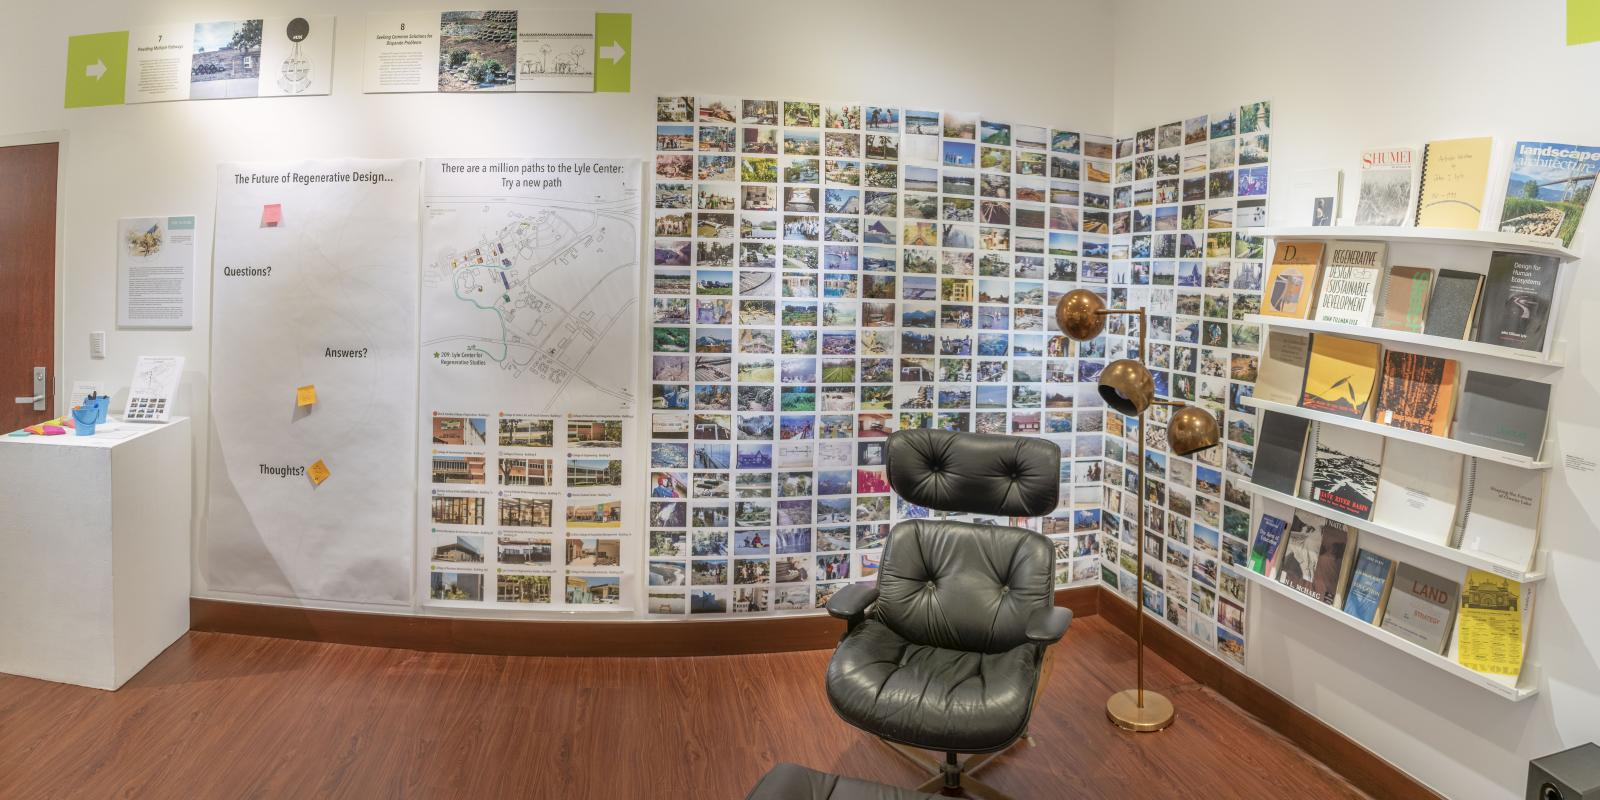 "Installation View, Reading nook at back of gallery, ""John T. Lyle and the Future of Regenerative Design"" Exhibition, Oct. 17, 2019 to Dec. 8, 2019, Curator: Cybele Lyle, Don B. Huntley Gallery, Cal Poly Pomona."